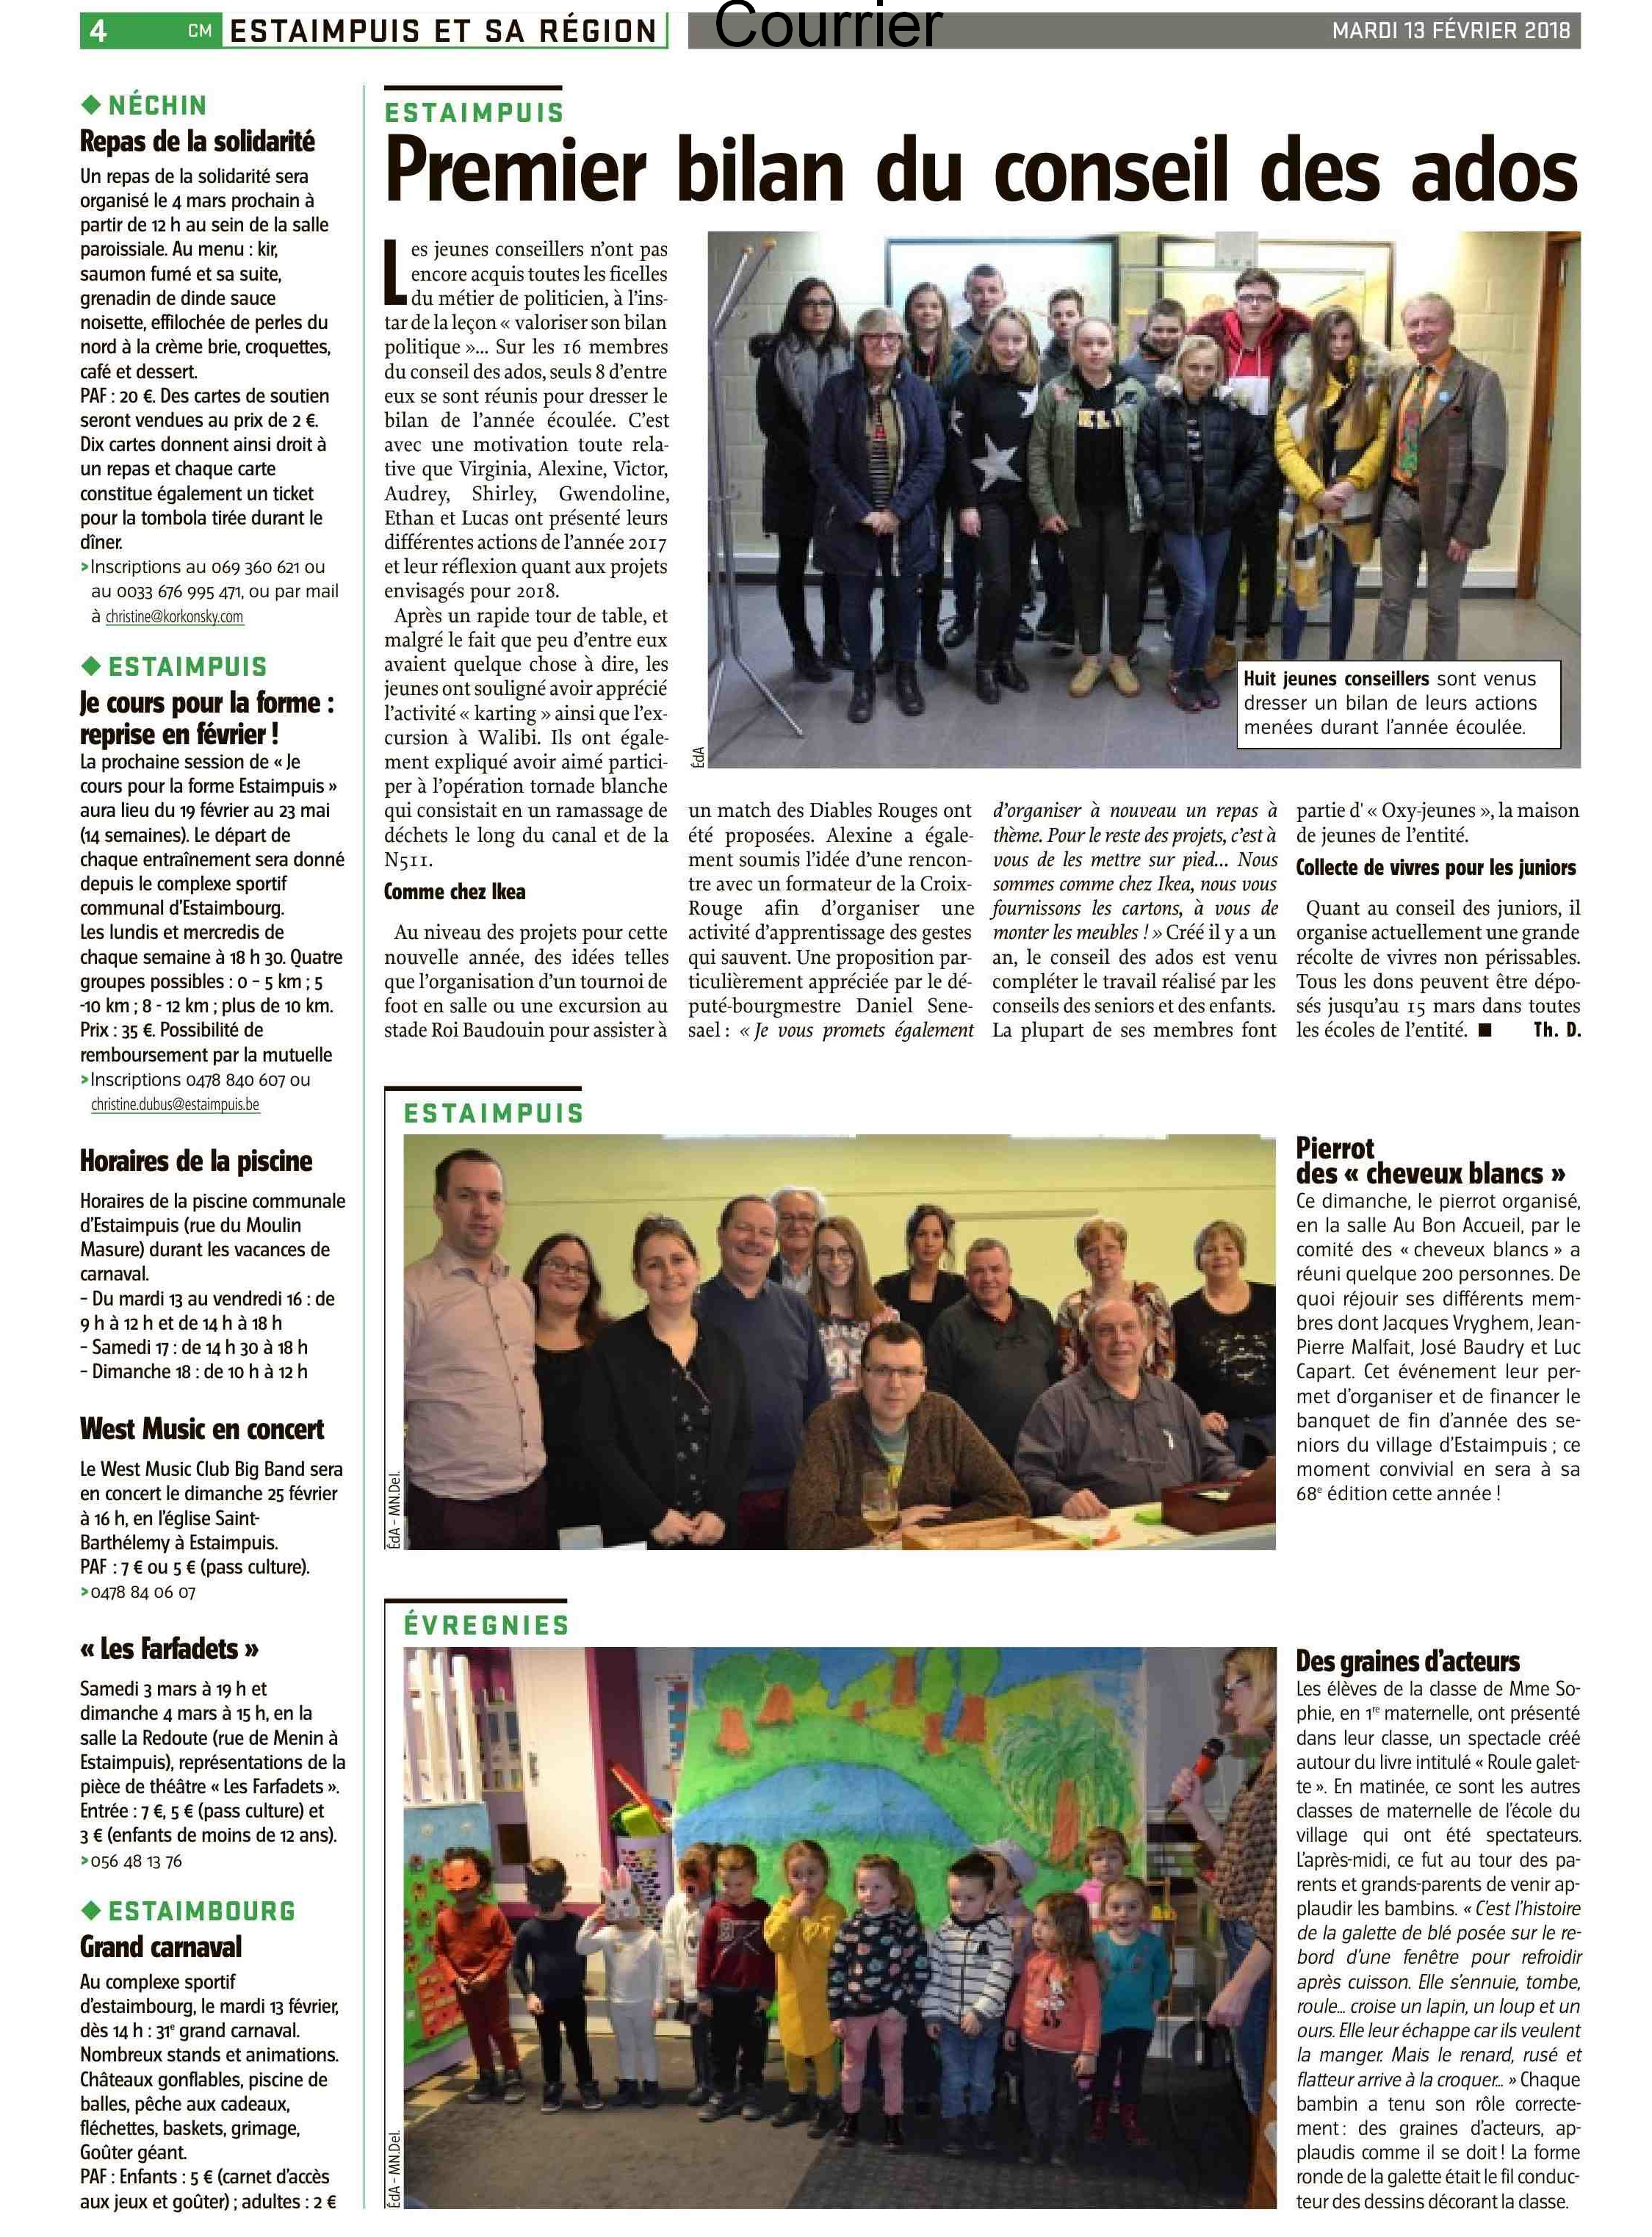 Courrier 13022018